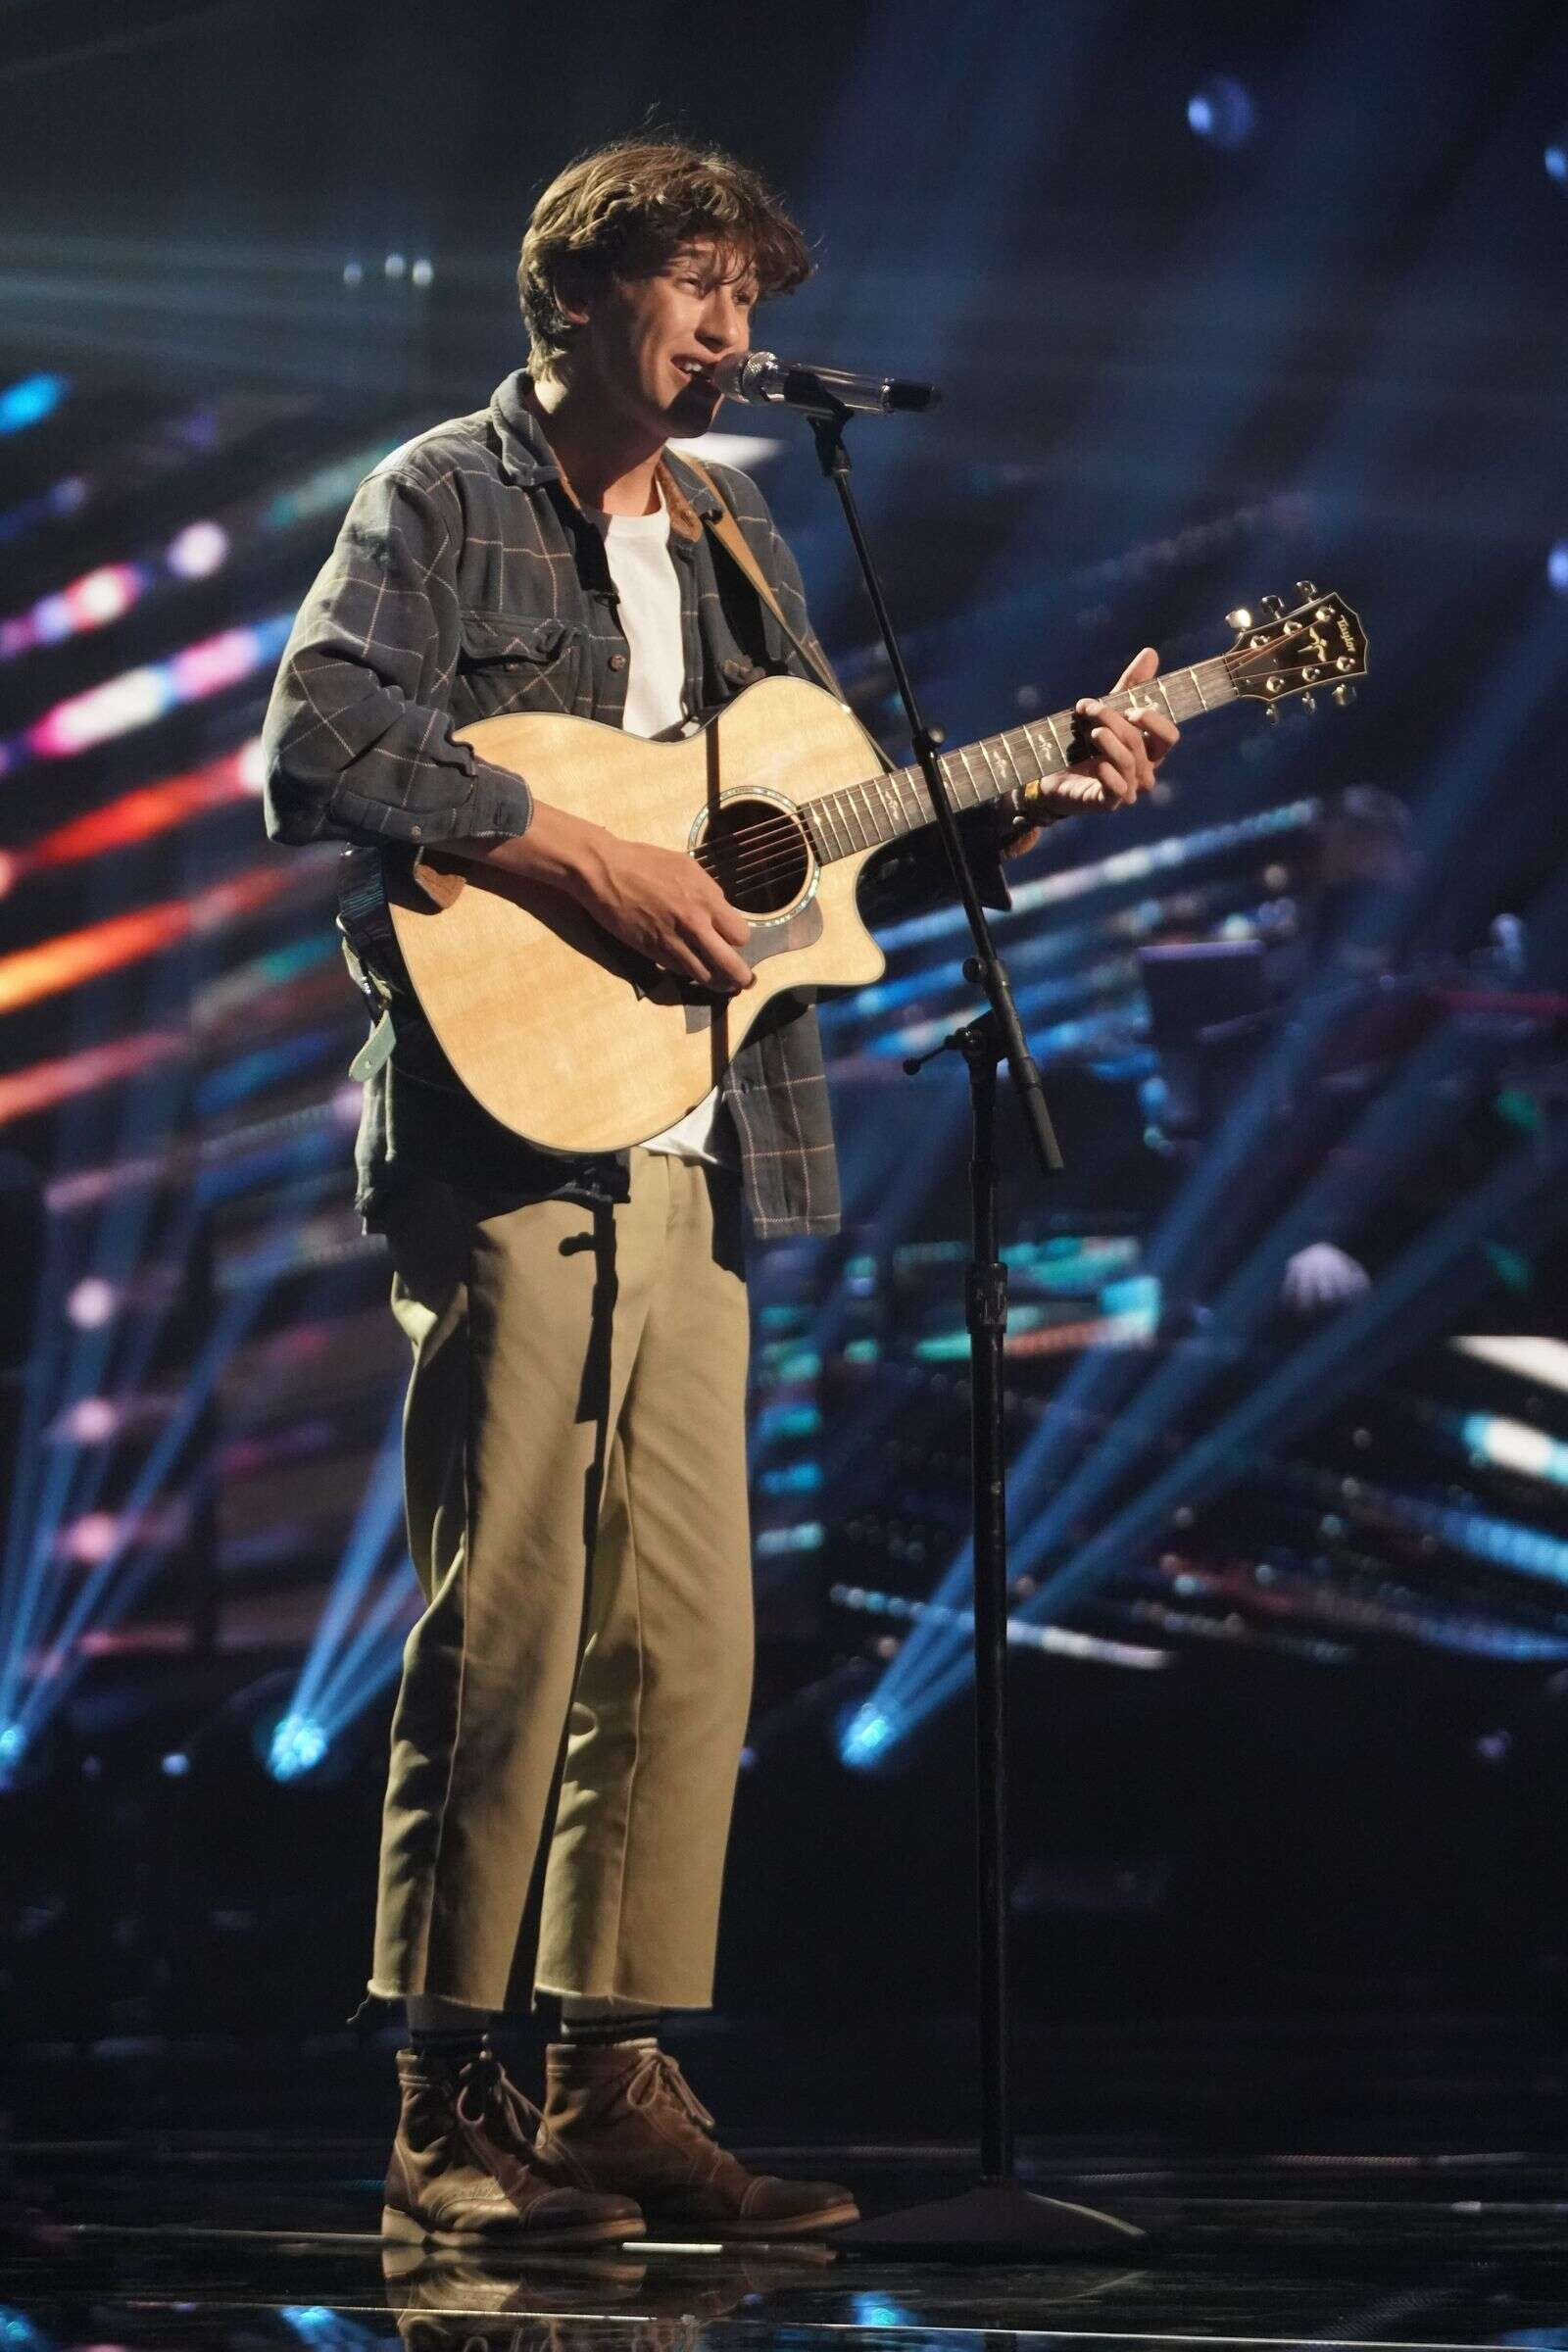 Park City's Wyatt Pike drops out of 'American Idol'